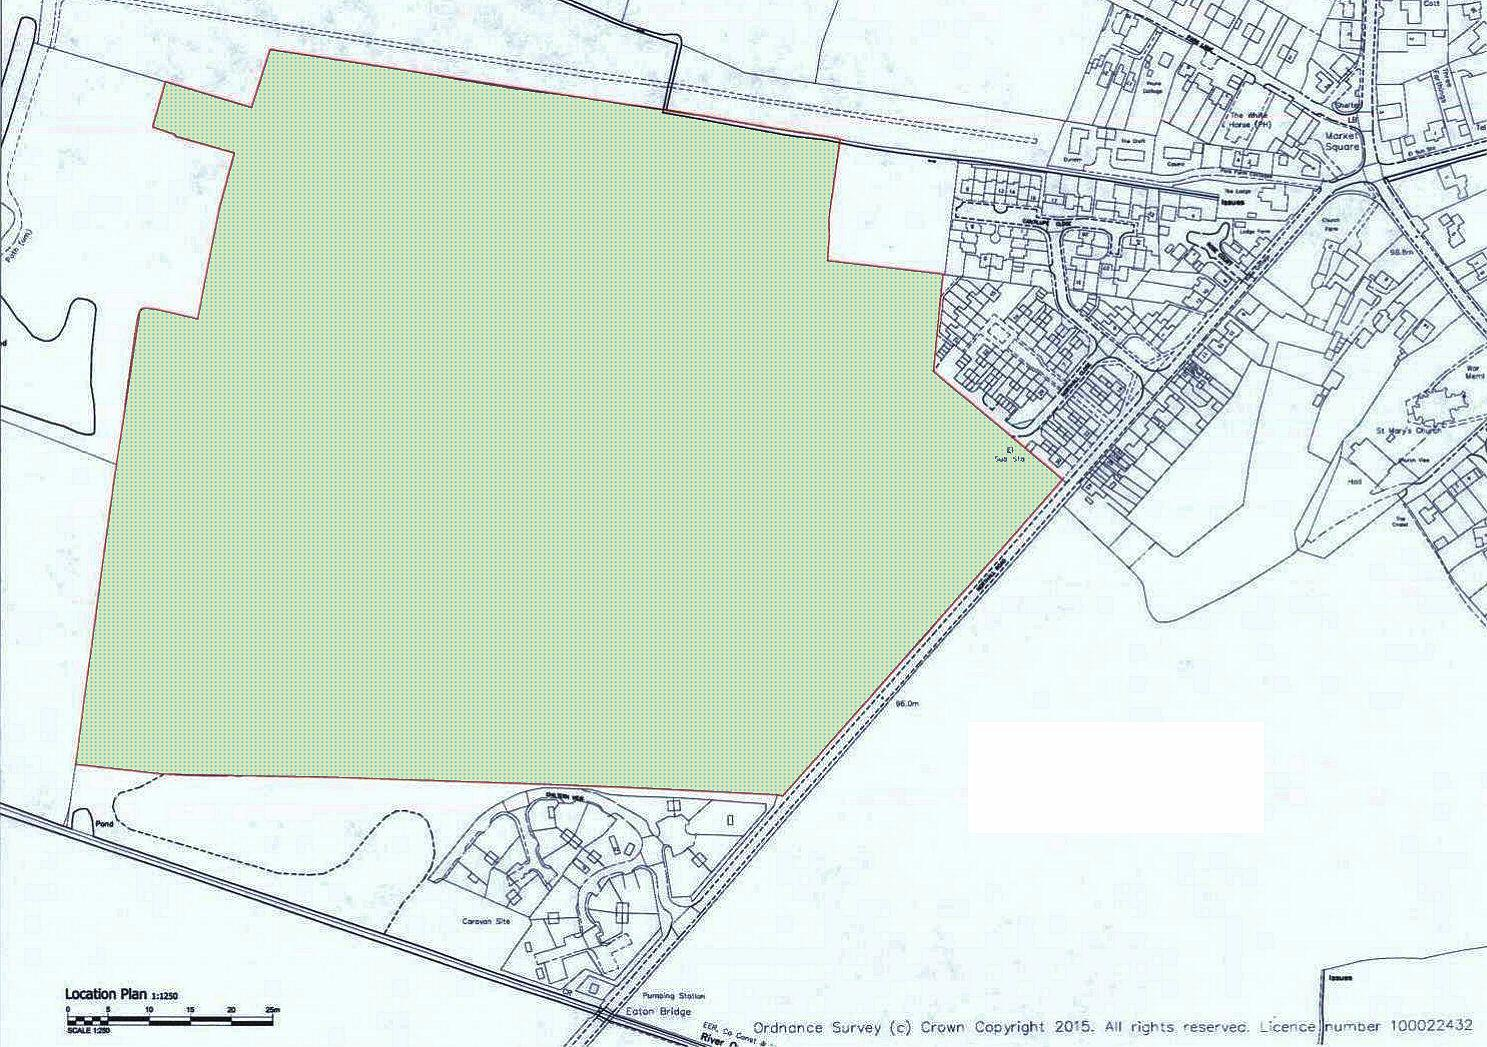 CB/15/02260/SCN: Plan for new development off Northall Road, Eaton Bray